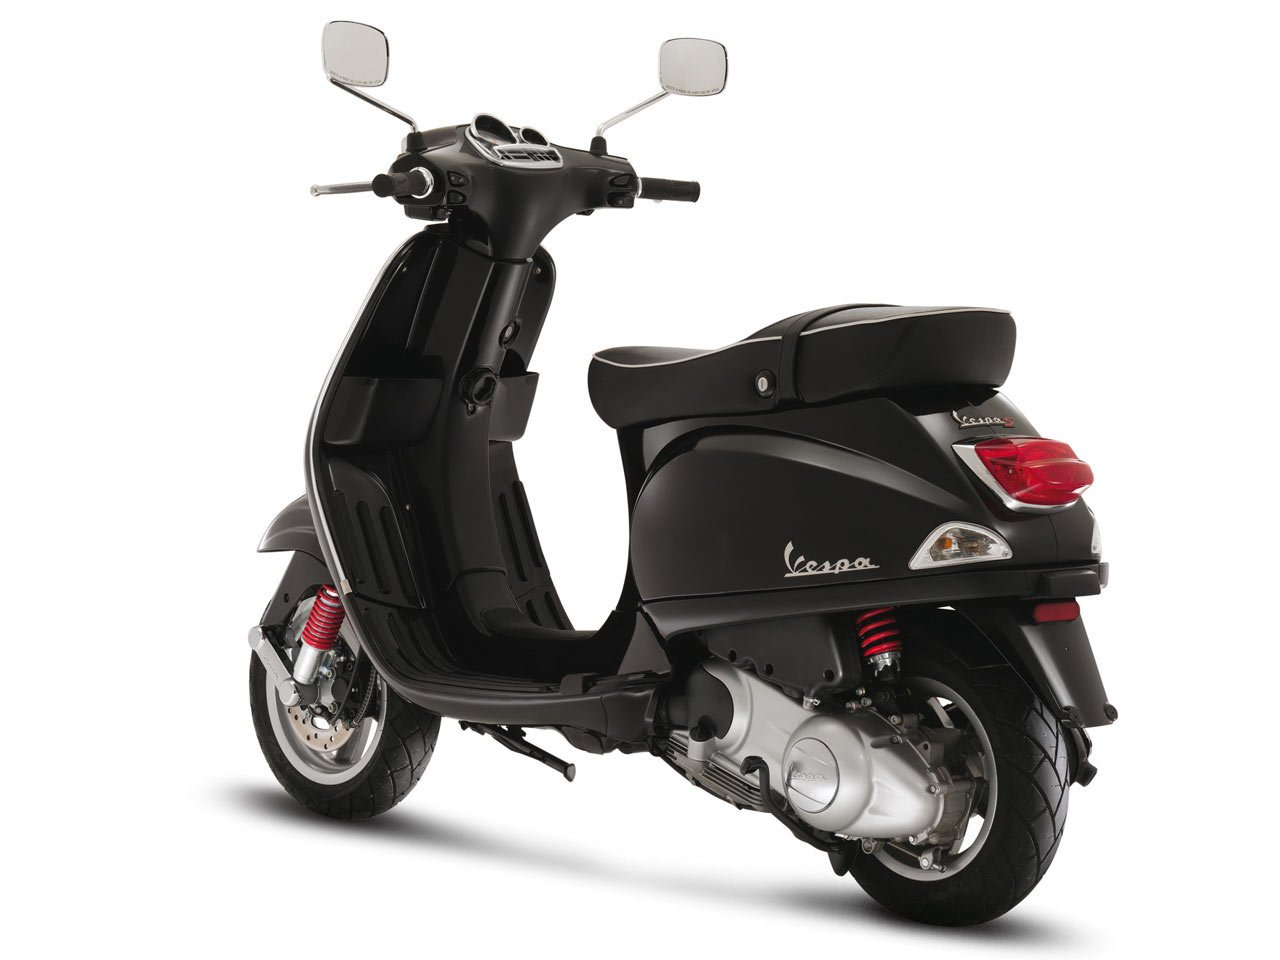 vespa lx 125 price specifications india. Black Bedroom Furniture Sets. Home Design Ideas